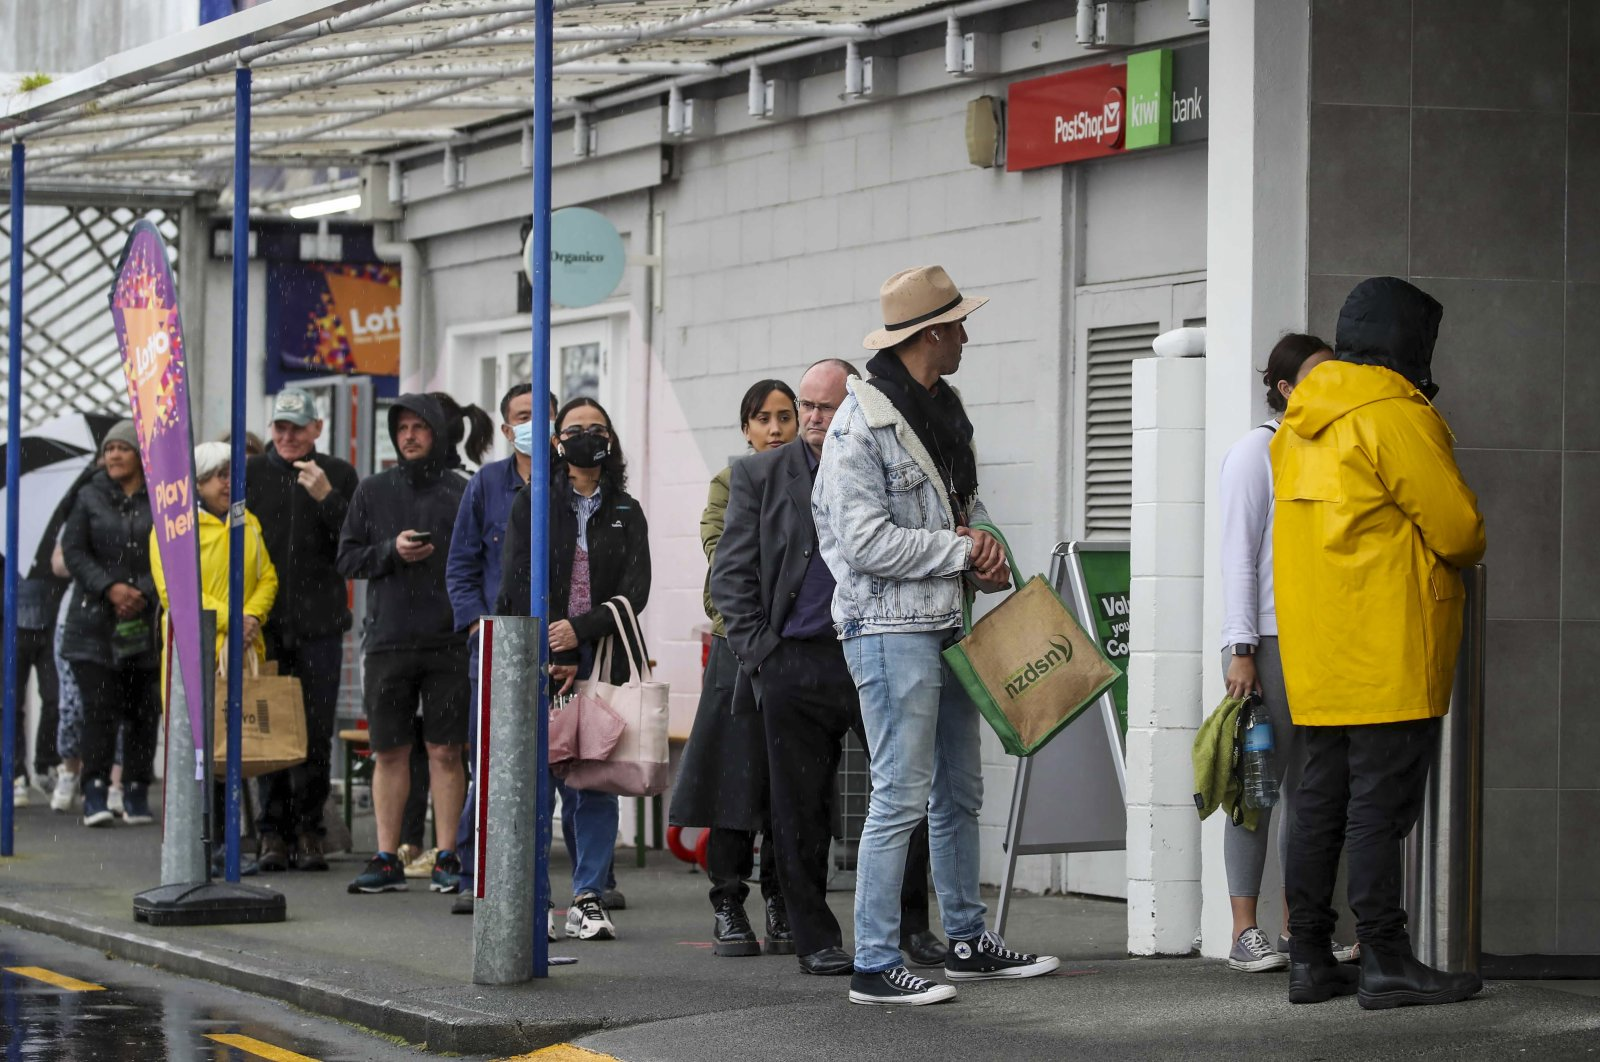 Shoppers lineup to enter a supermarket in Auckland, New Zealand, Aug. 17, 2021. (New Zealand Herald via AP)